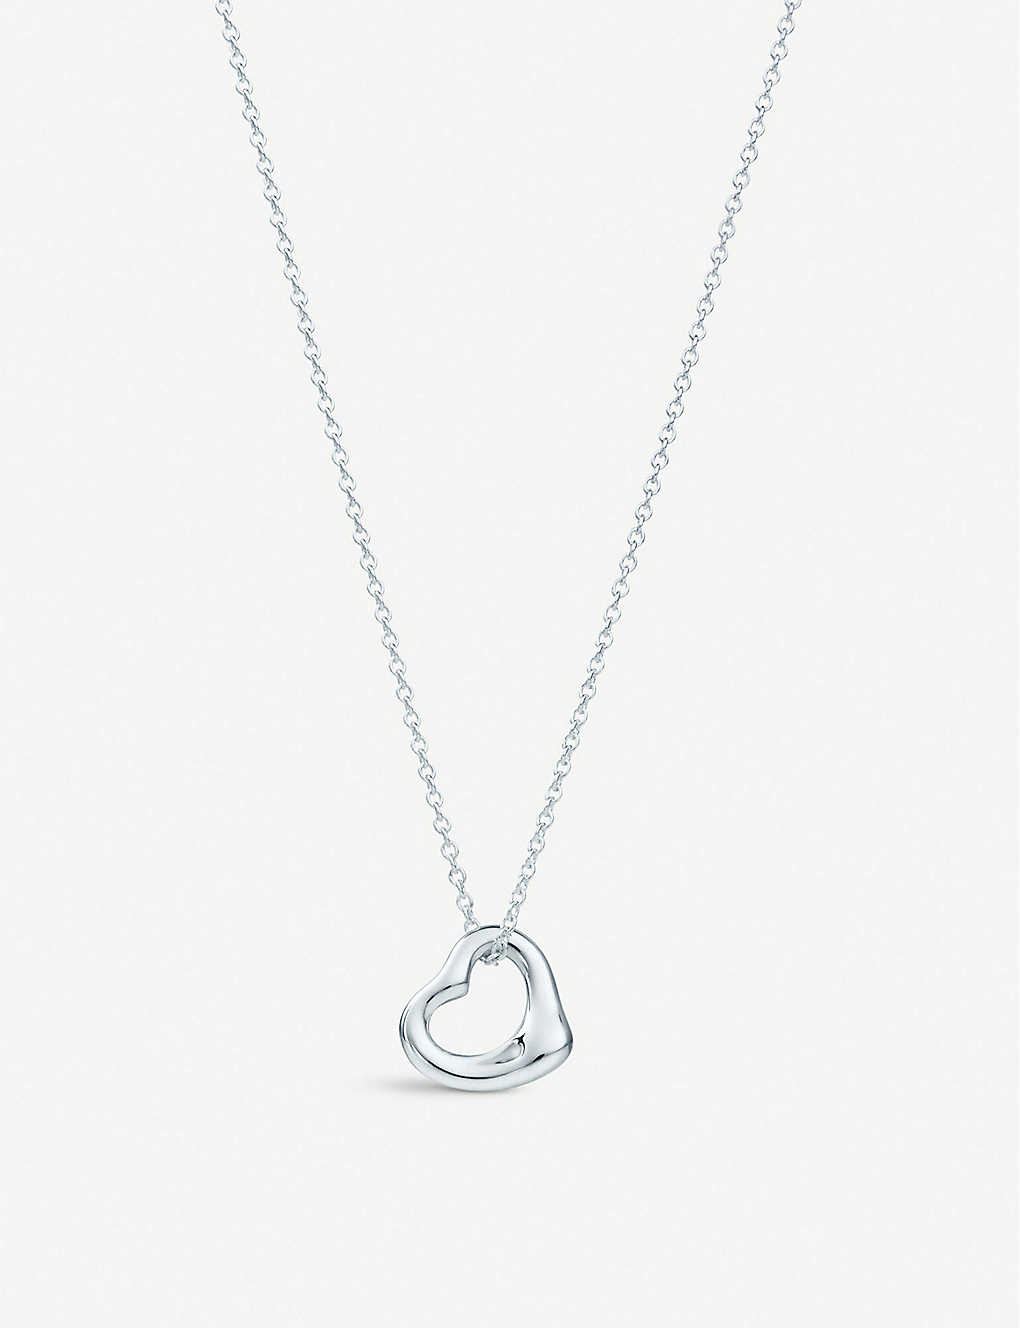 3edc66ed2 TIFFANY & CO - Elsa Peretti® Open Heart pendant in sterling silver ...